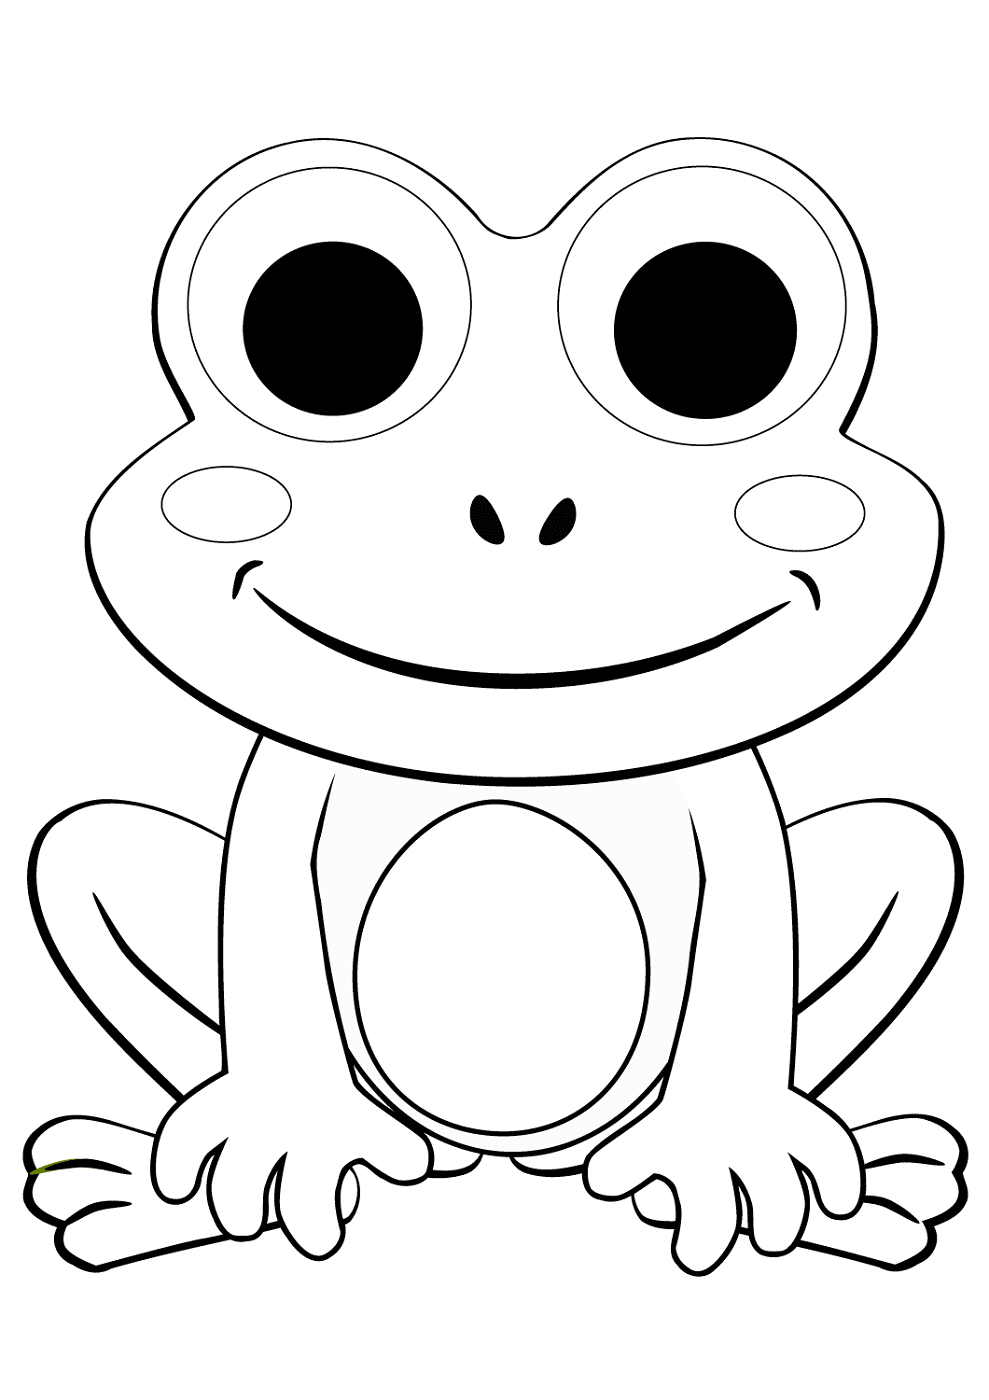 coloring image of a frog free printable frog coloring pages for kids cool2bkids image coloring frog of a